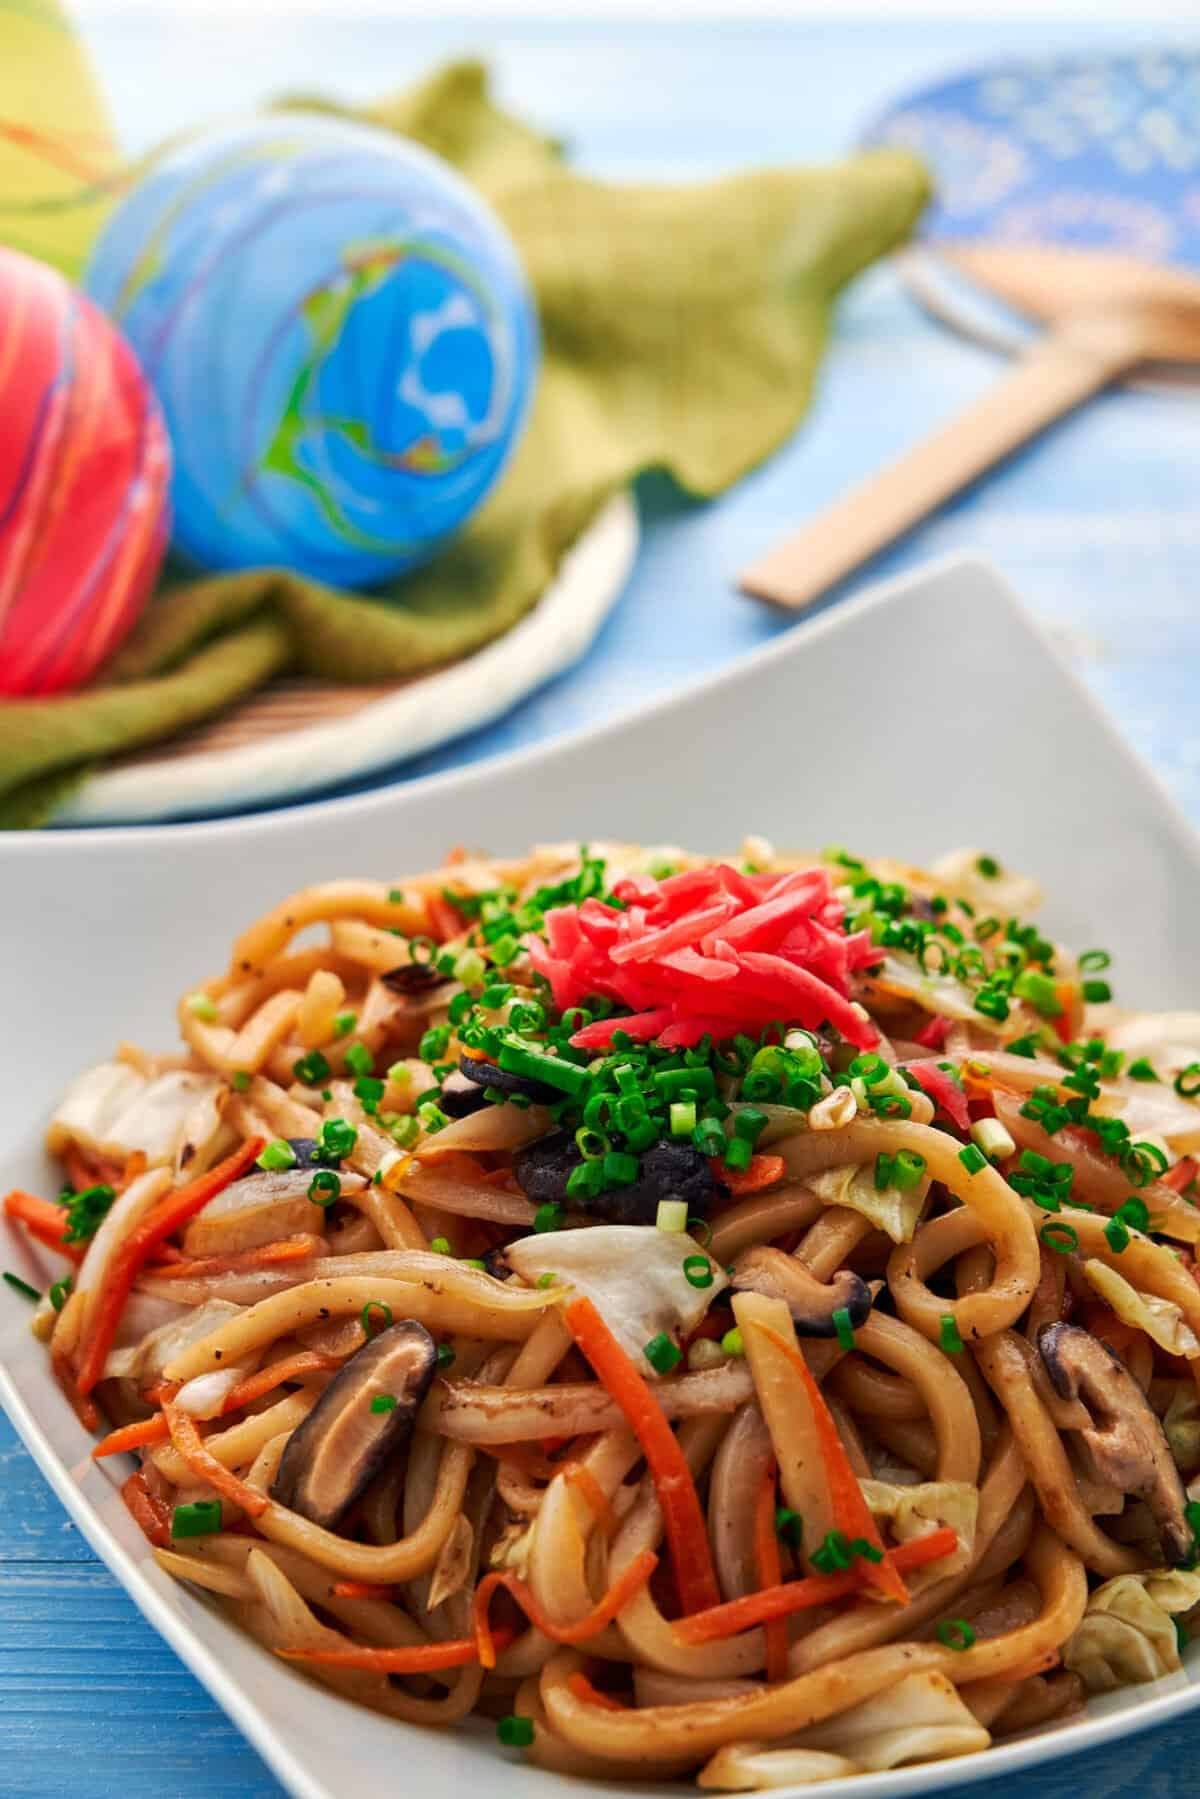 With thick, springy noodles and loads of veggies, Yaki Udon is an easy noodle stir-fry that's a street-food favorite in Japan.